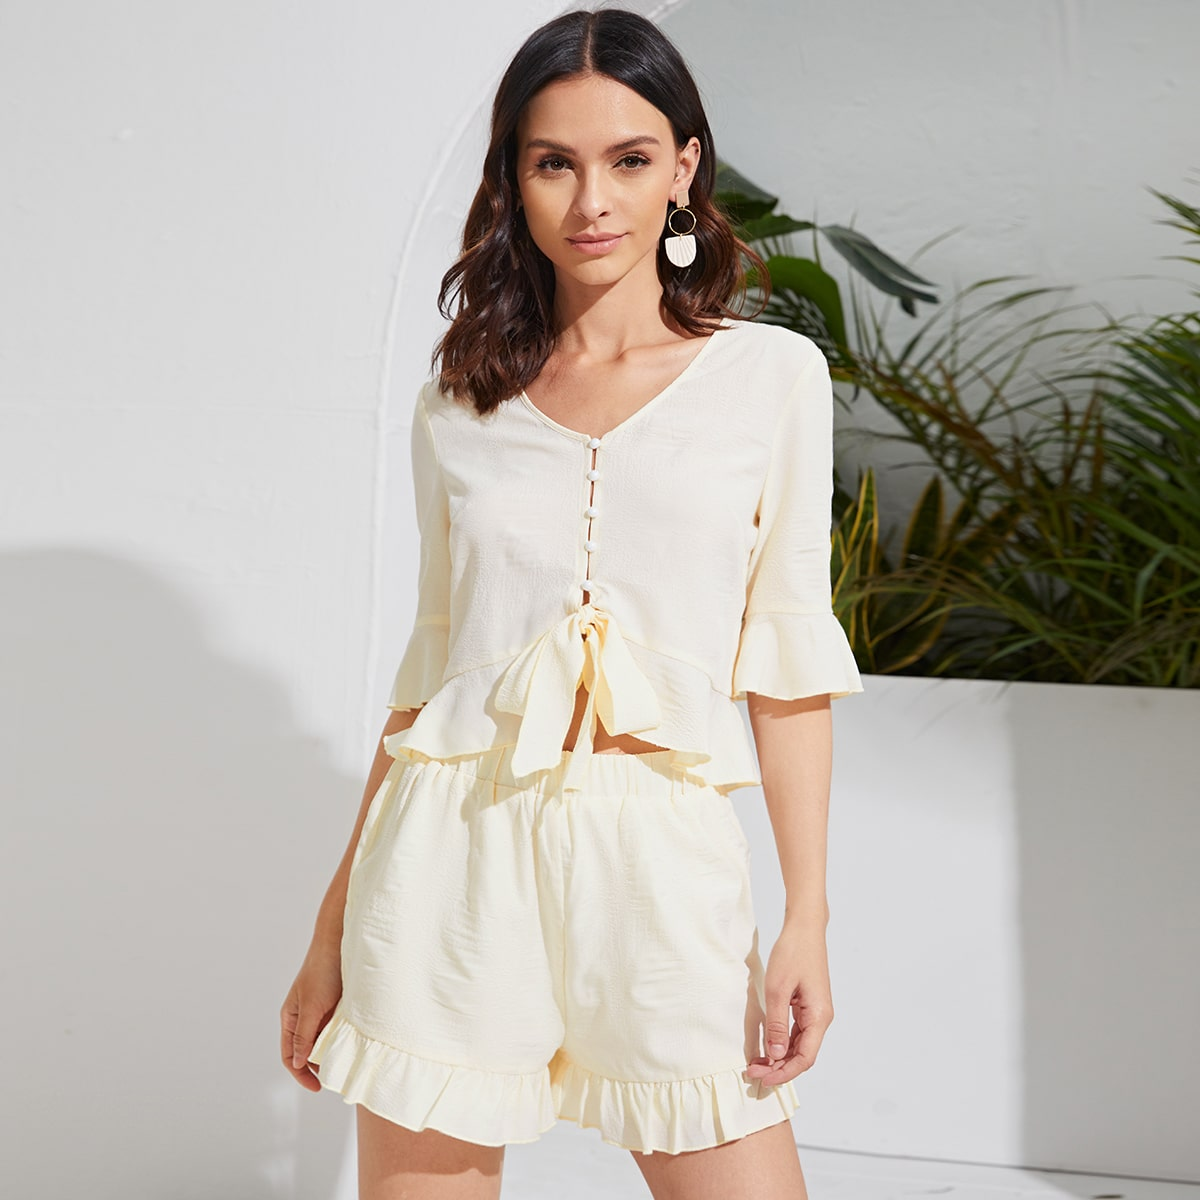 Knotted Ruffle Hem Top & Shorts Set, SHEIN  - buy with discount